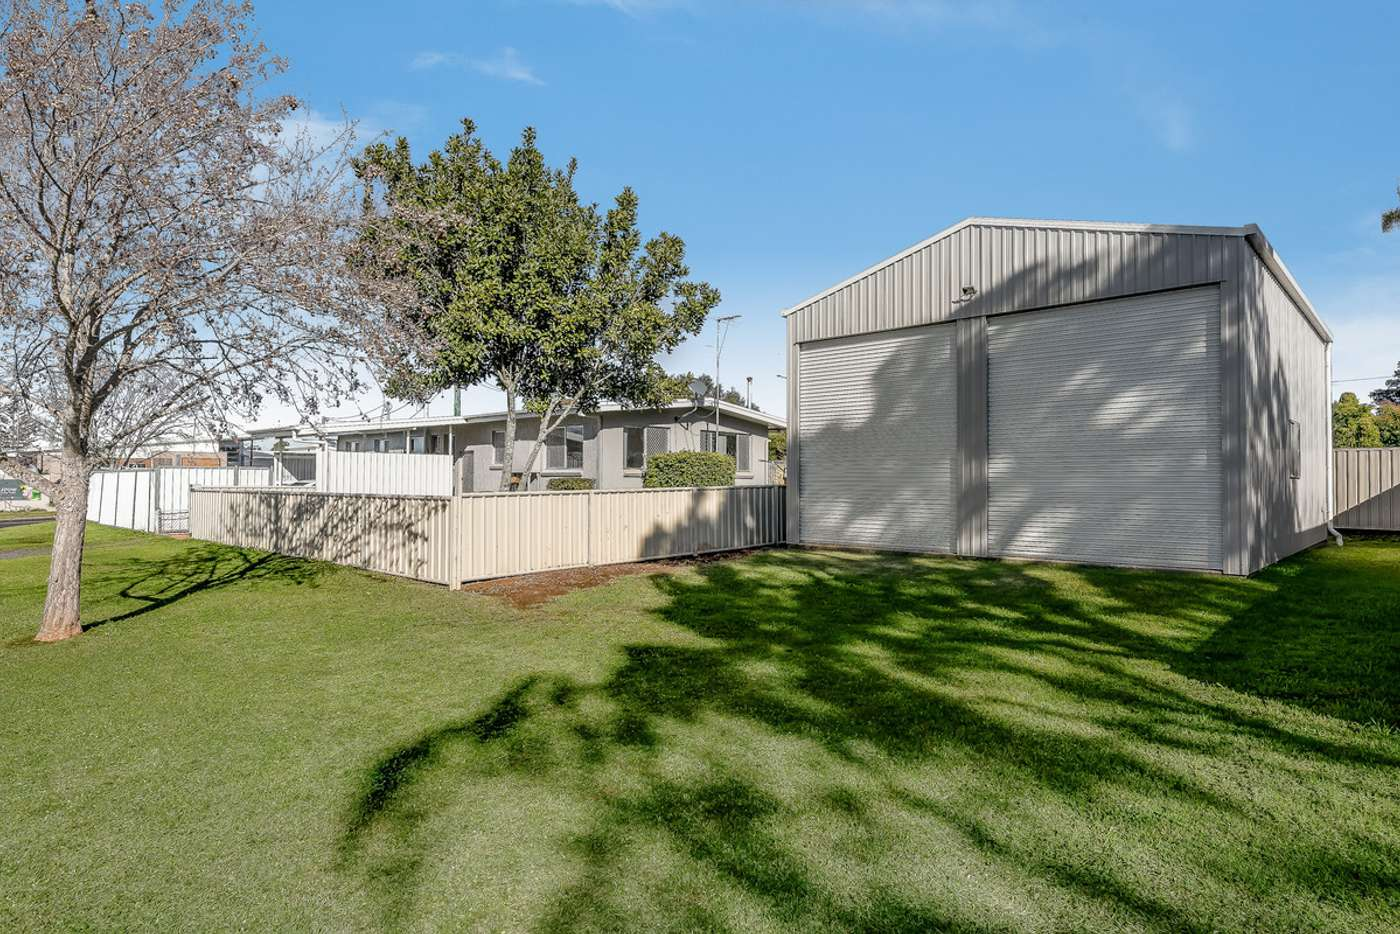 Main view of Homely house listing, 421 Stenner Street, Harristown QLD 4350